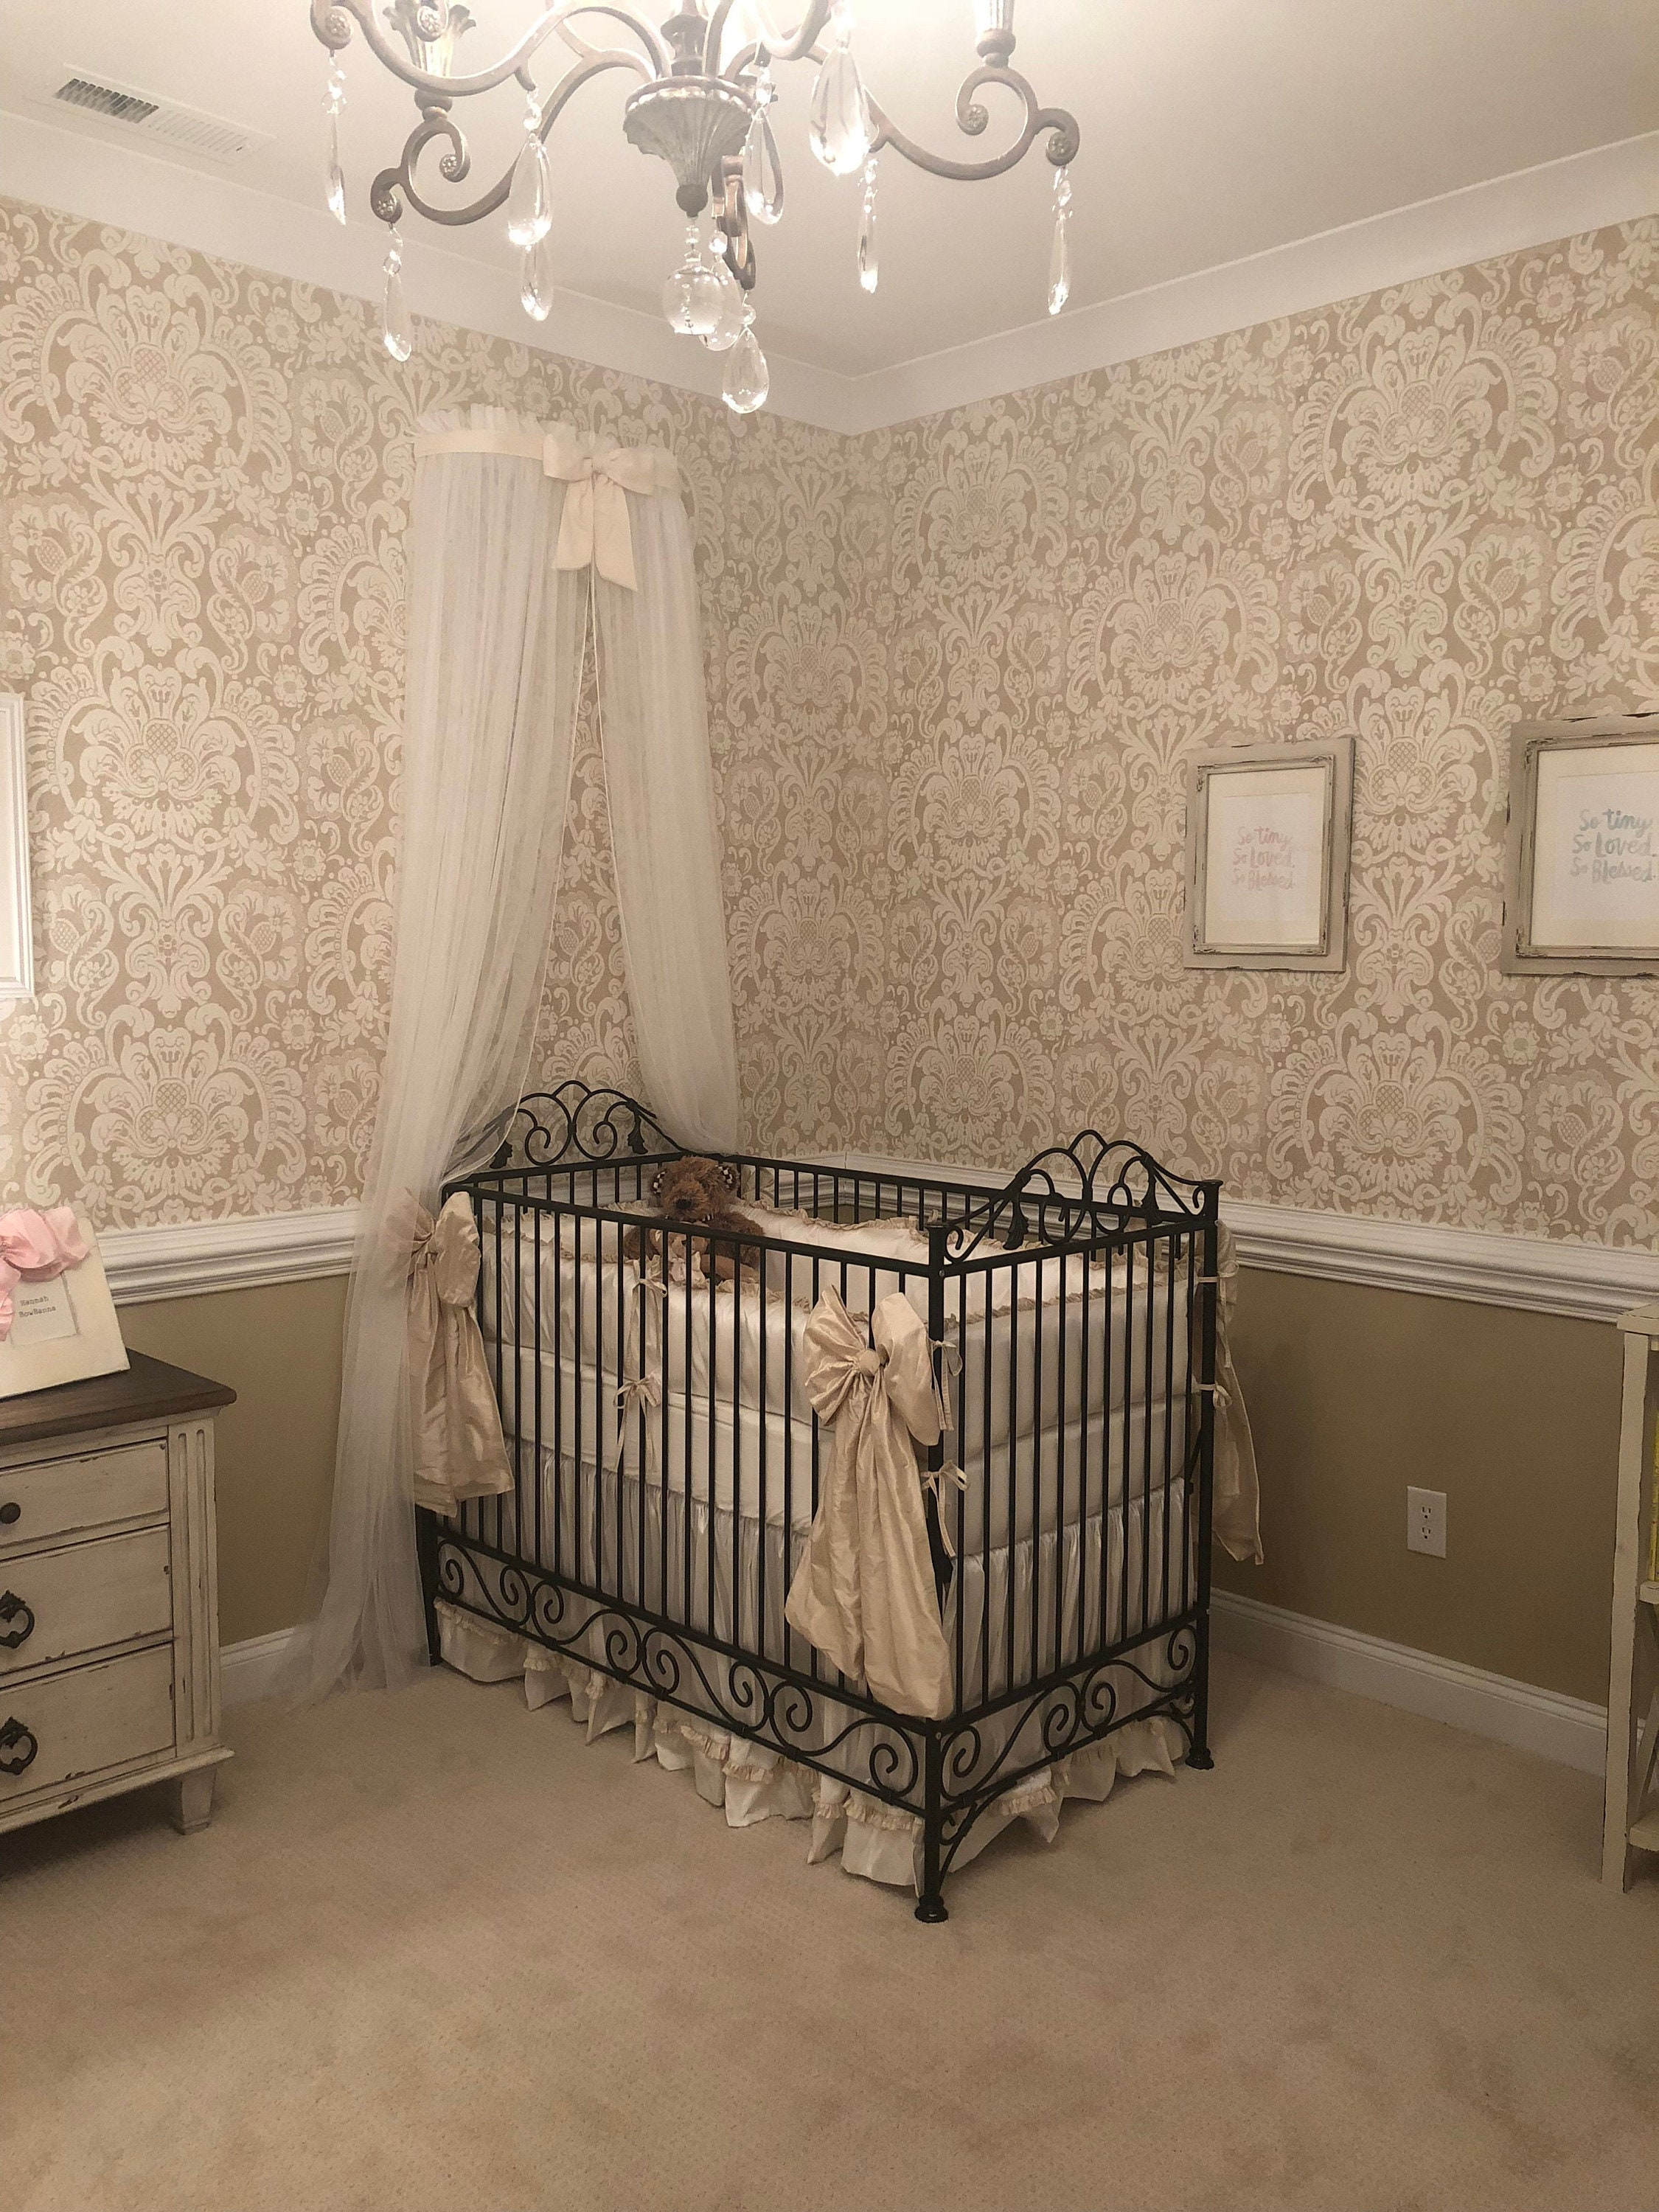 - Princess Bed Canopy CrOwN FrEe White Sheer Curtain IVORY Bow Etsy